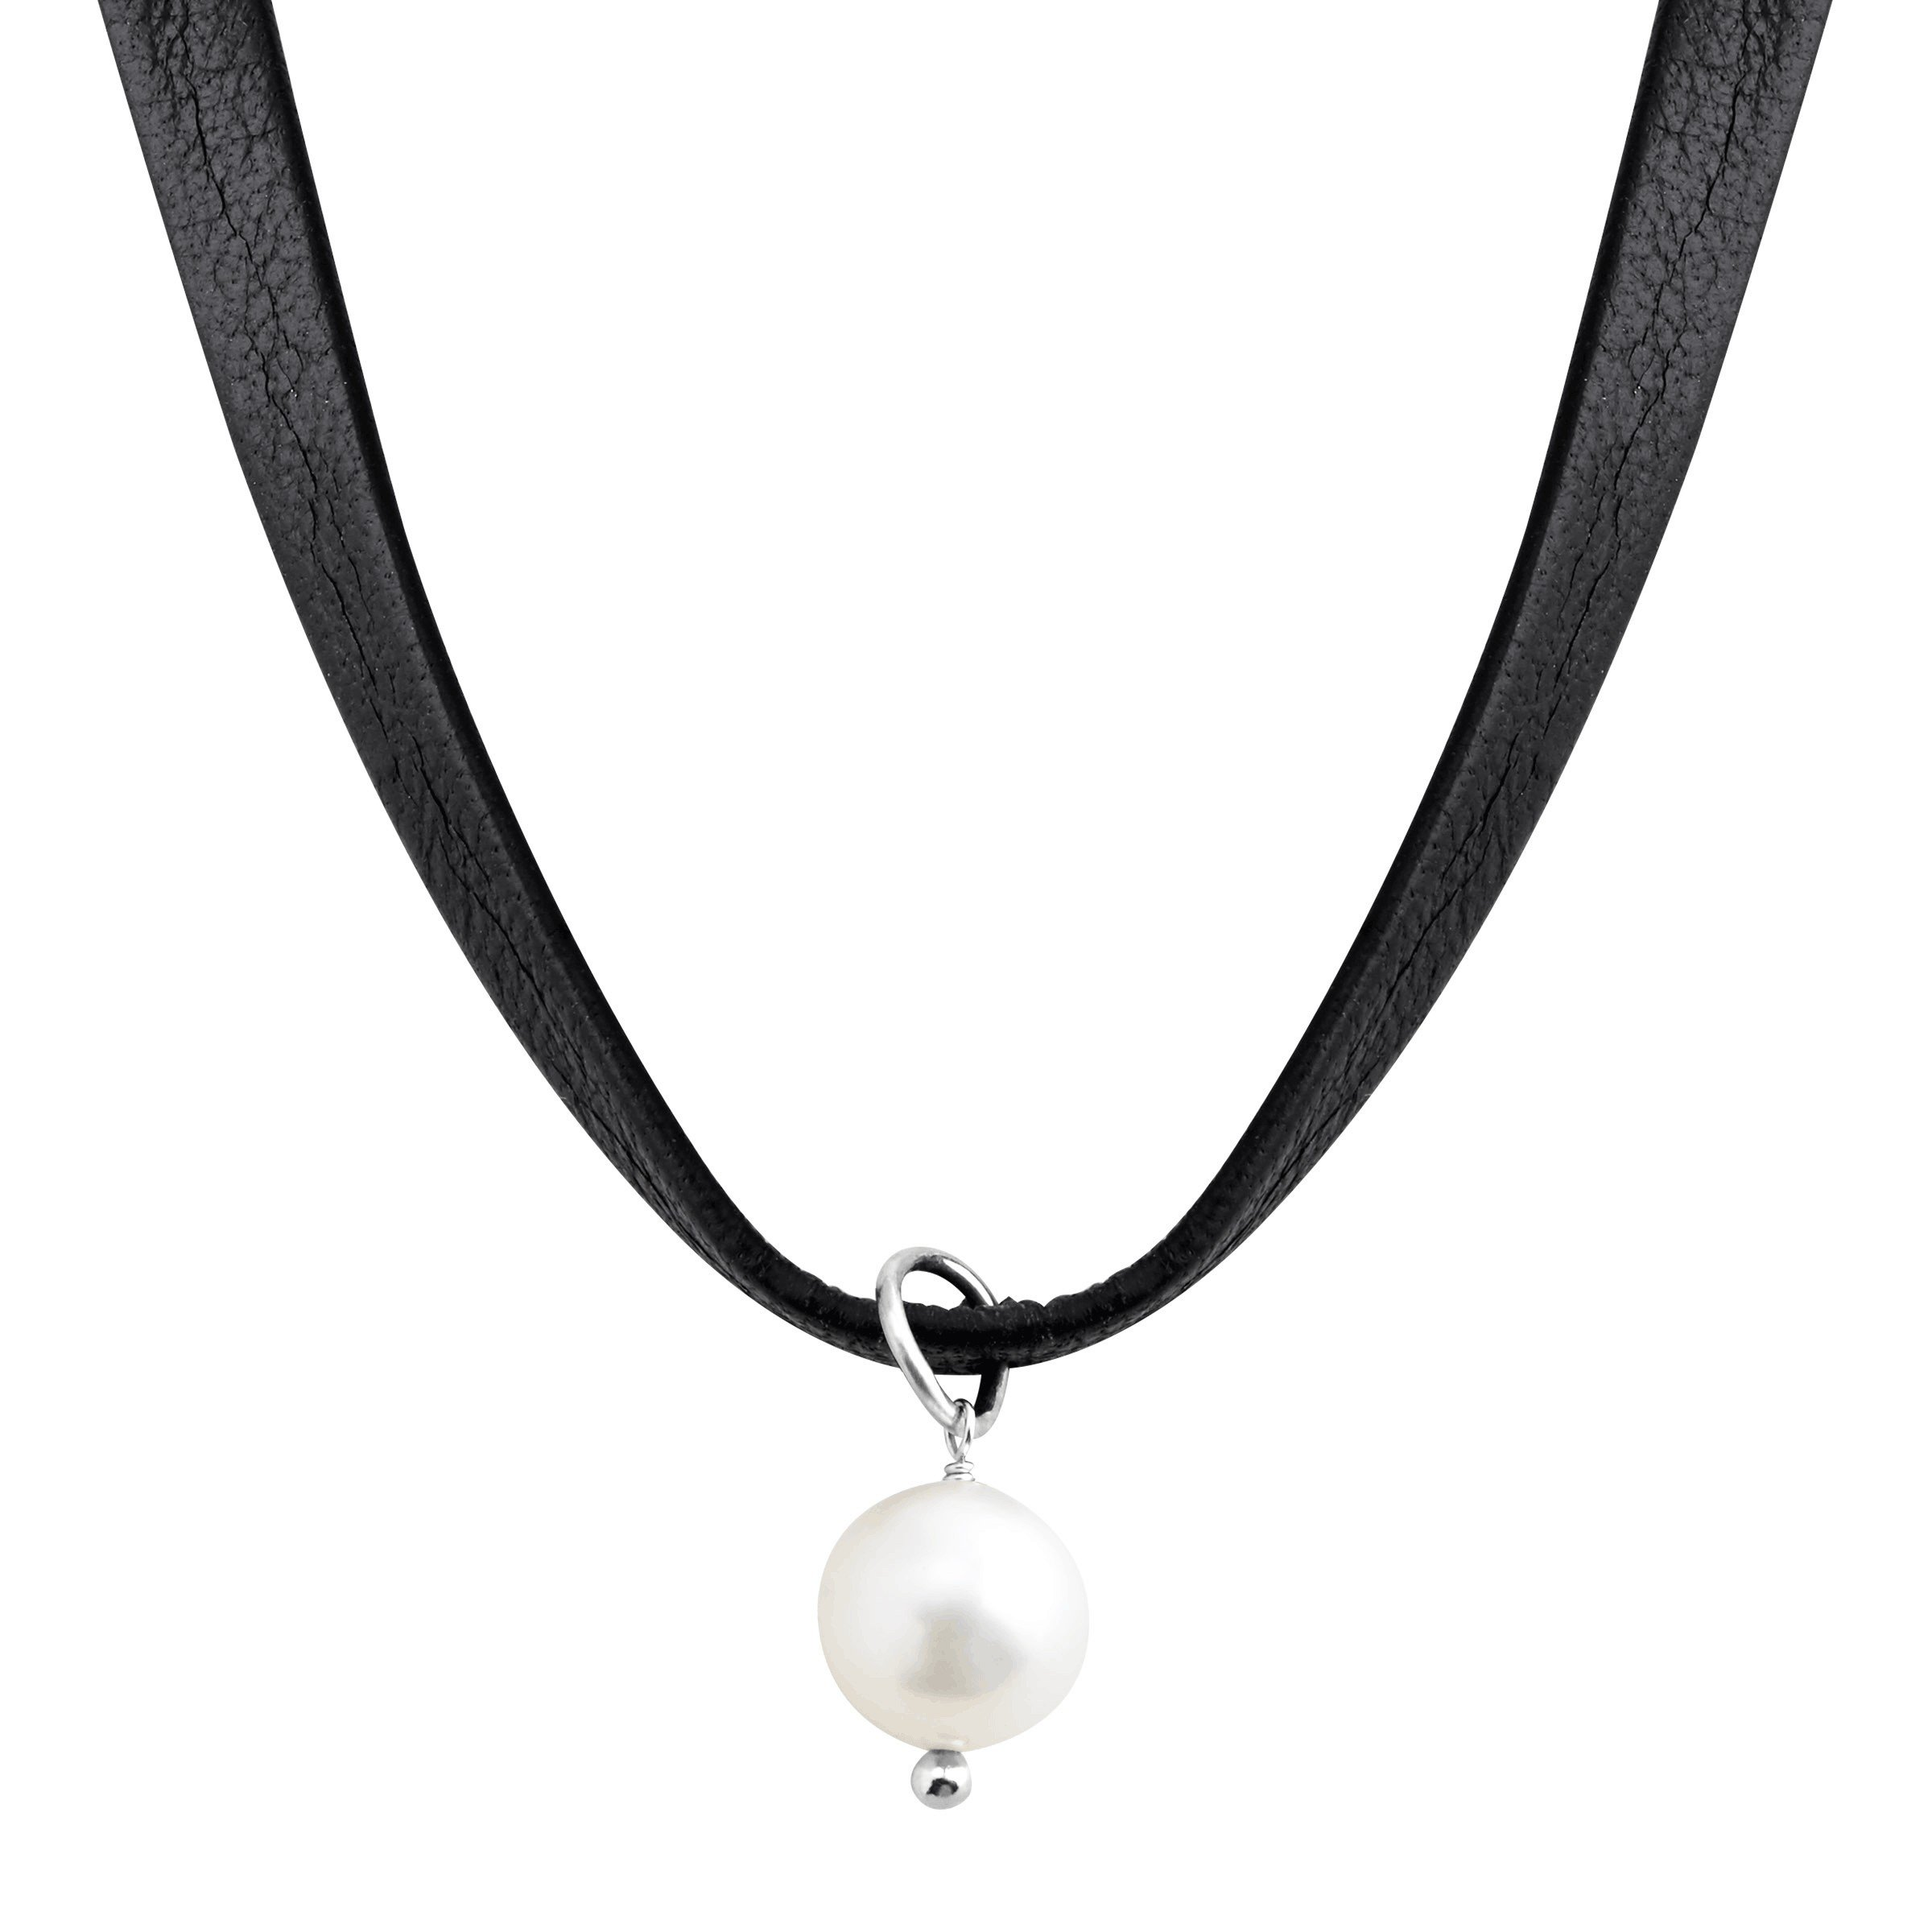 Silpada 'High Tide' Leather Choker Necklace with 8-8.5 mm Freshwater Cultured Pearl in Sterling Silver